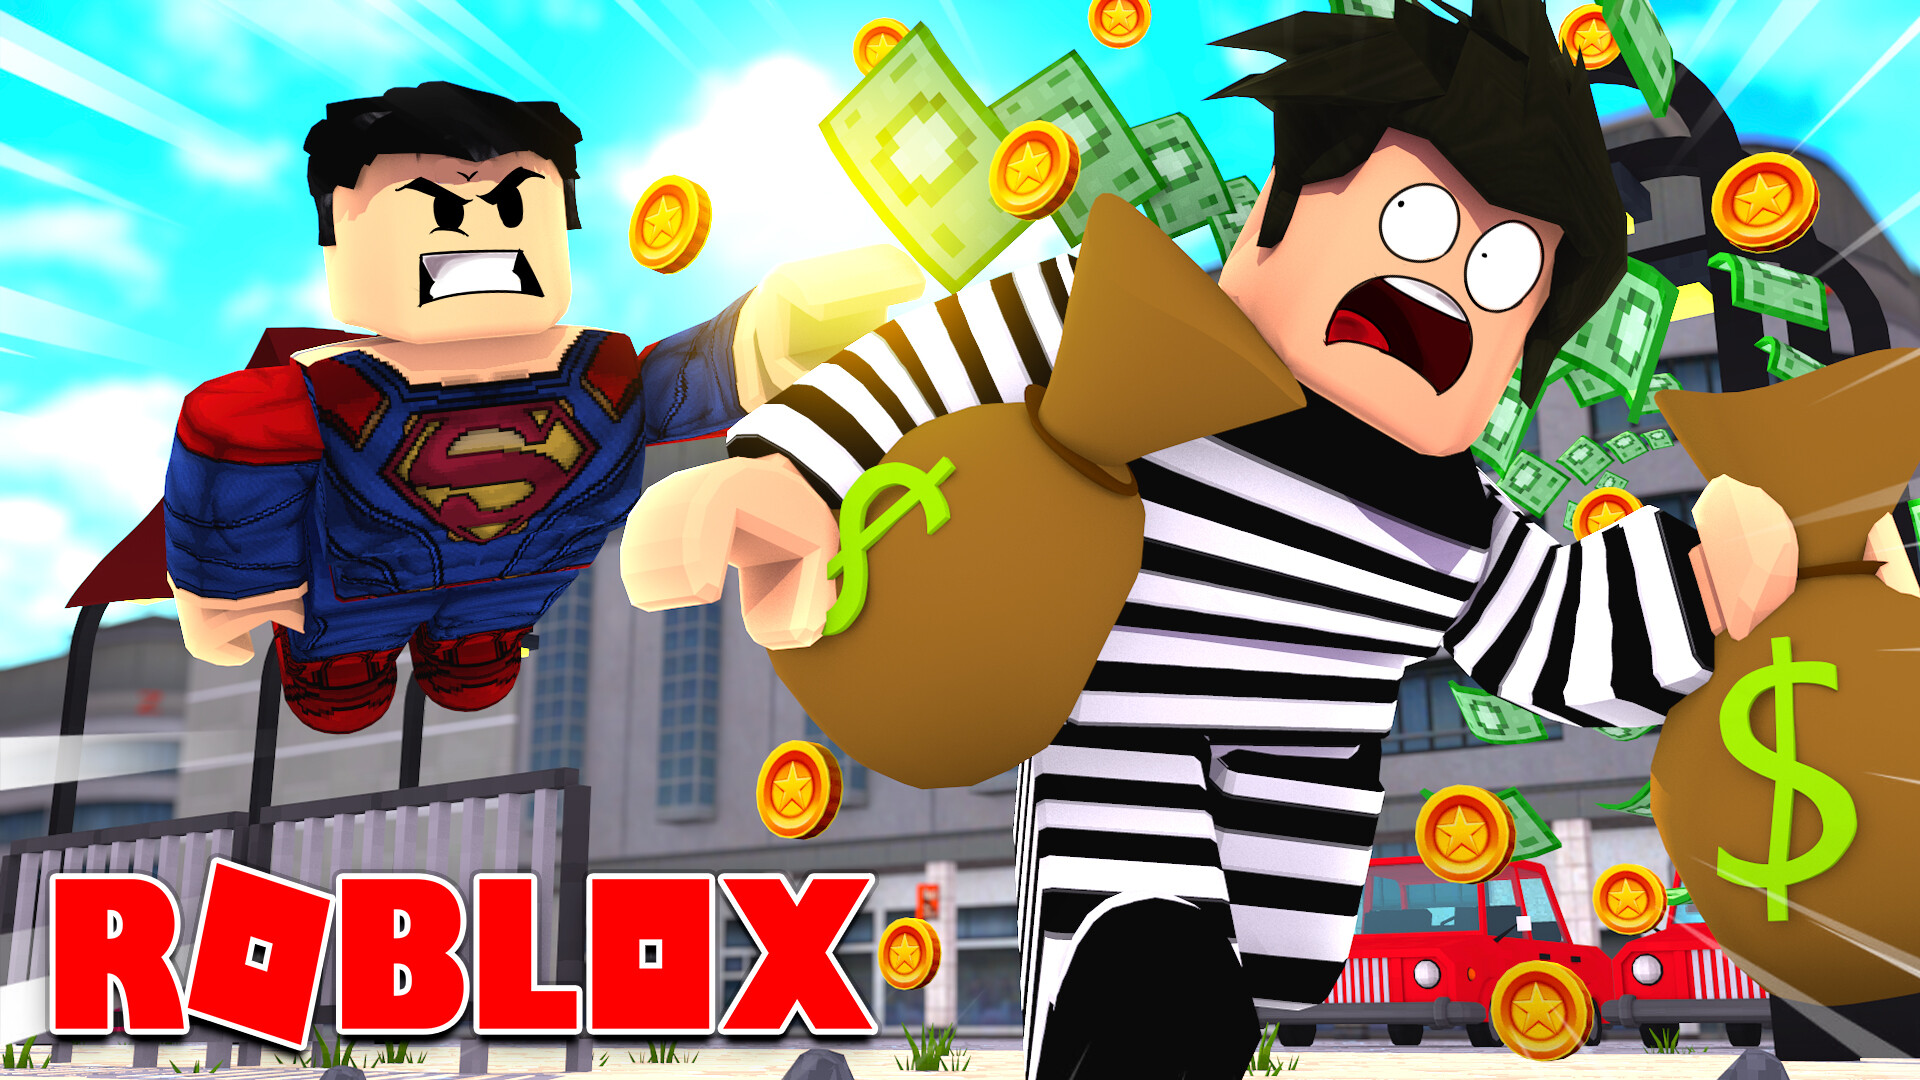 Cool Roblox Thumbnails Foxitor Creations Roblox Thumbnail S